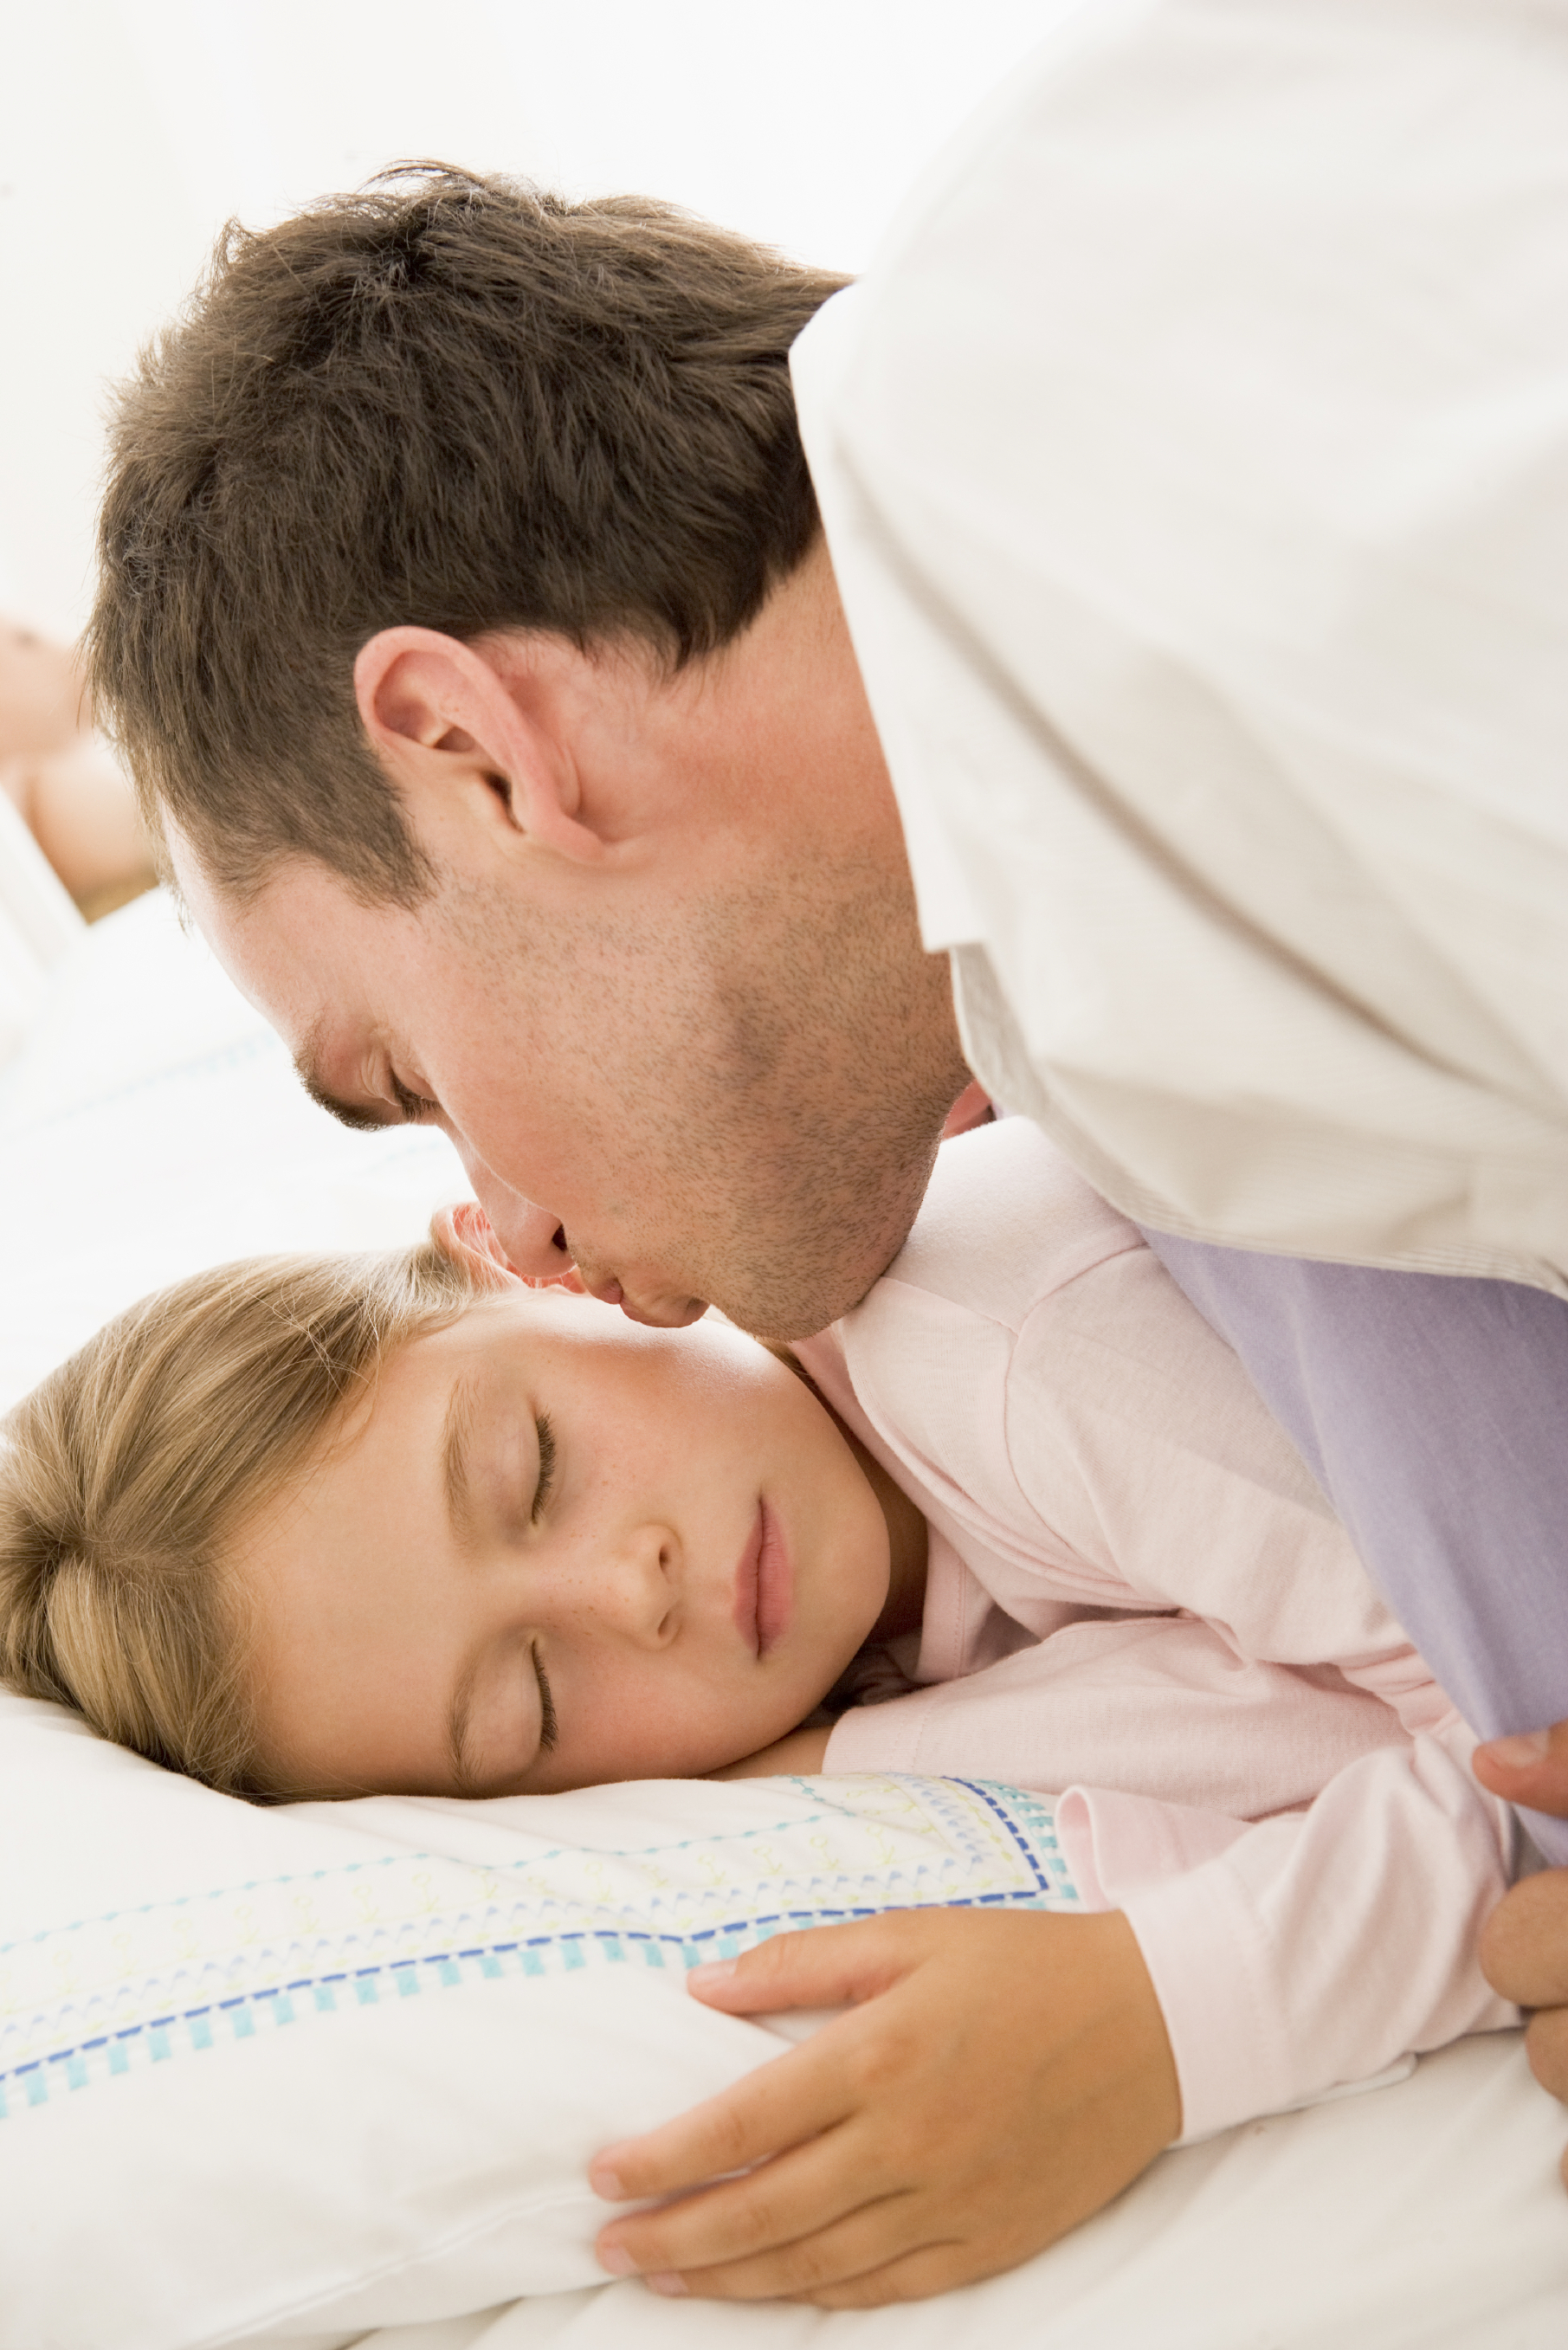 After parents divorce, regular overnight stays with dad are best for most young children